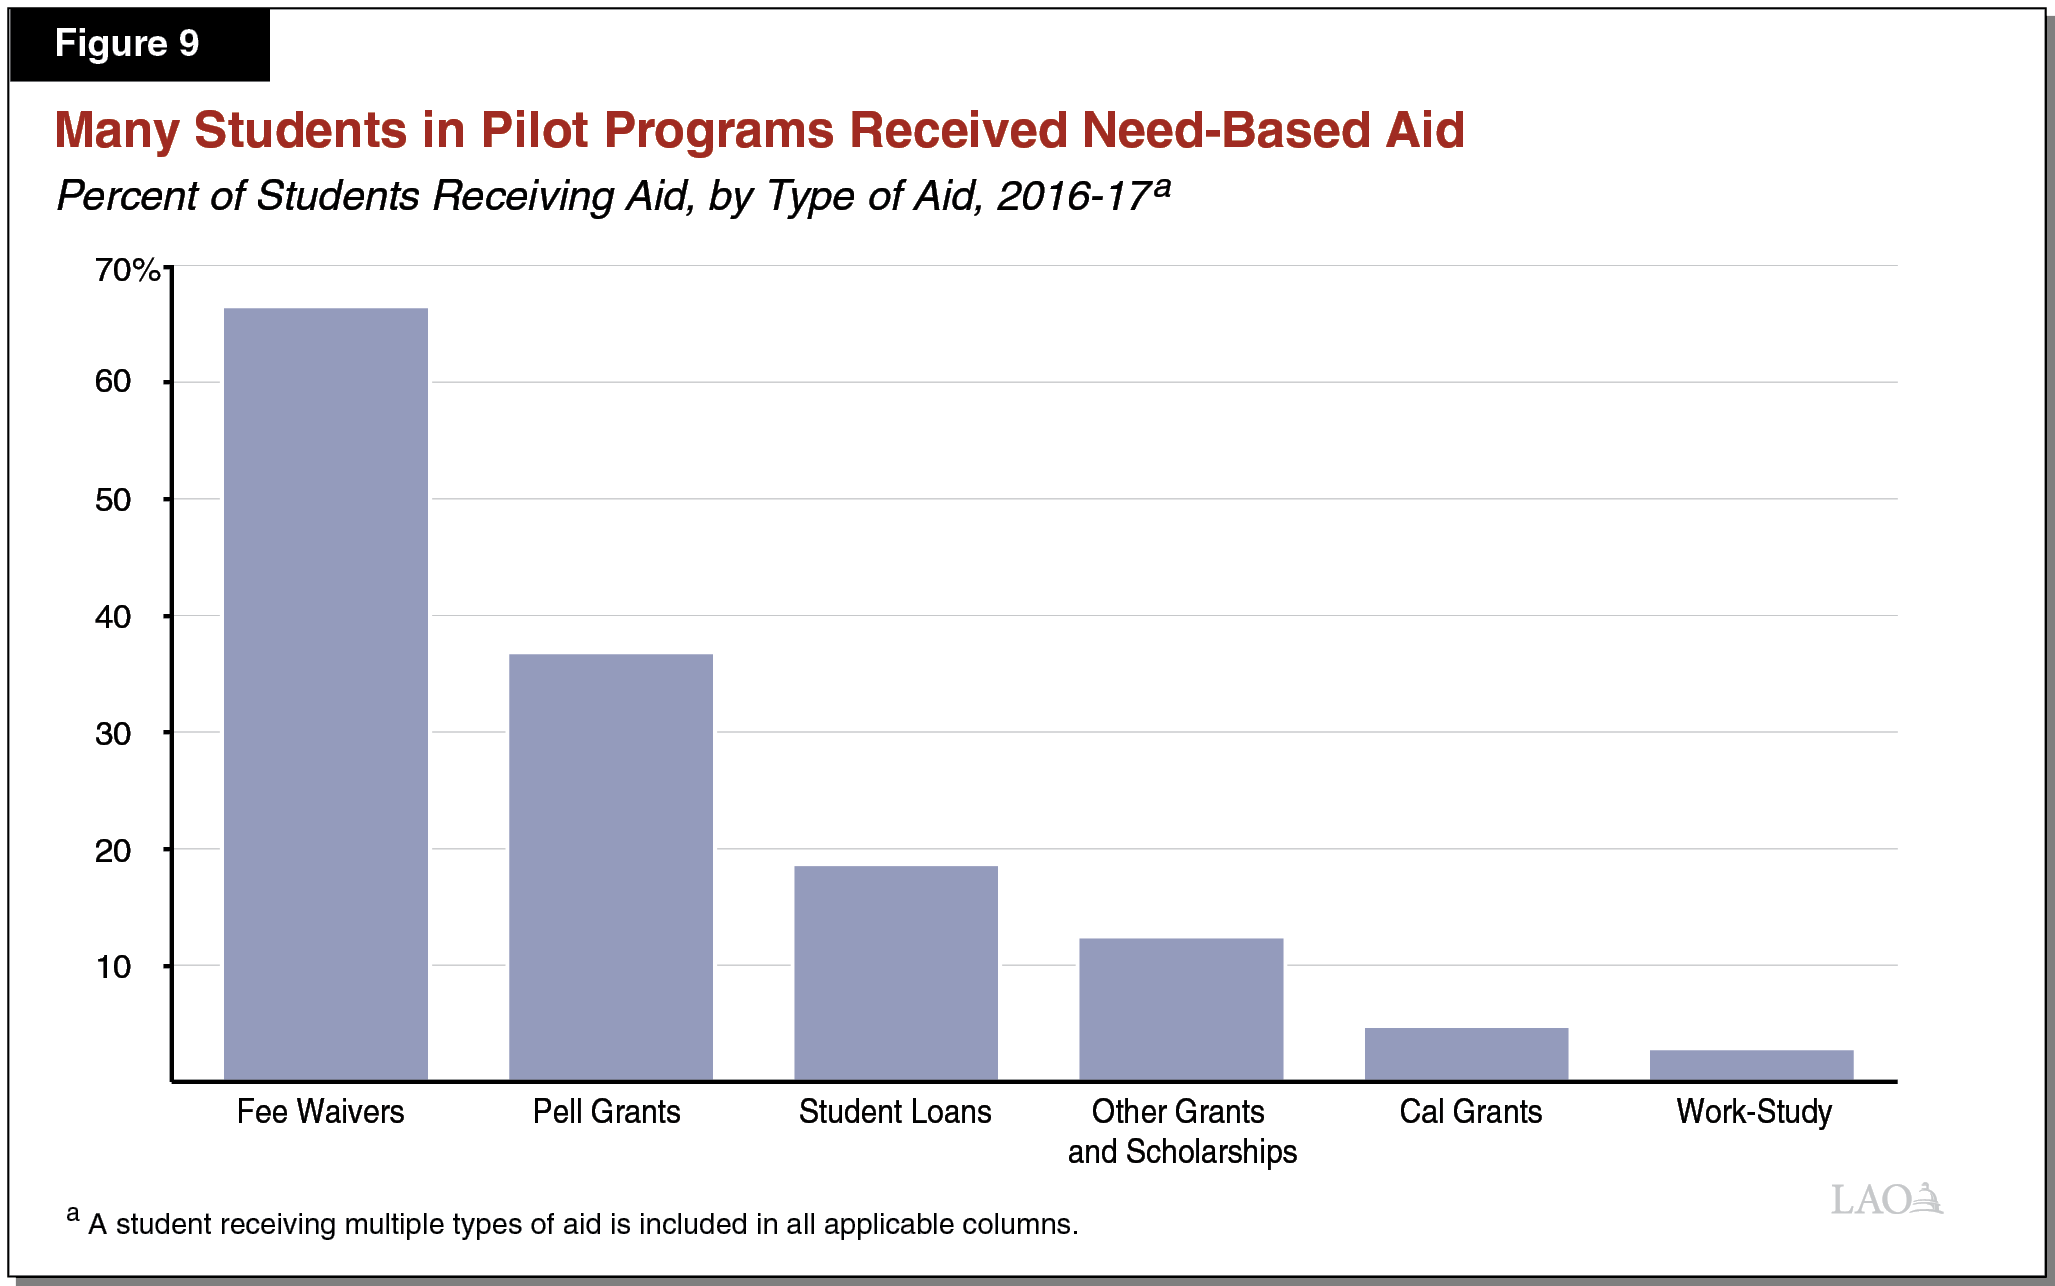 Figure 9 - Two-Thirds of Pilot Program Students Received Need-Based Aid